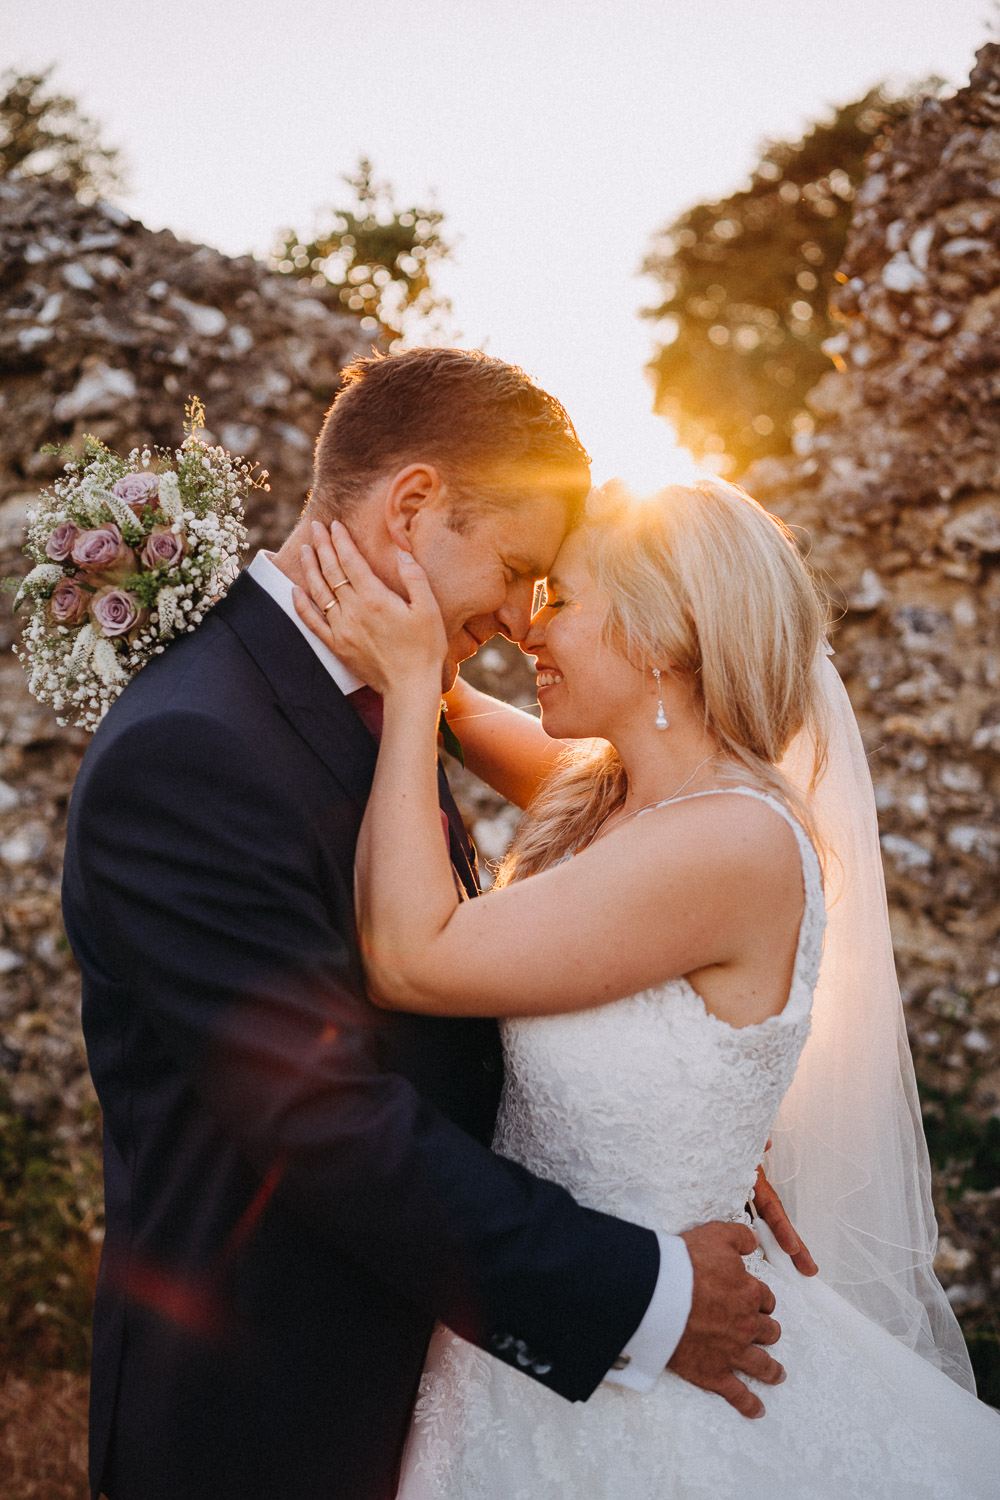 Wedding Photographer's Guide to Light